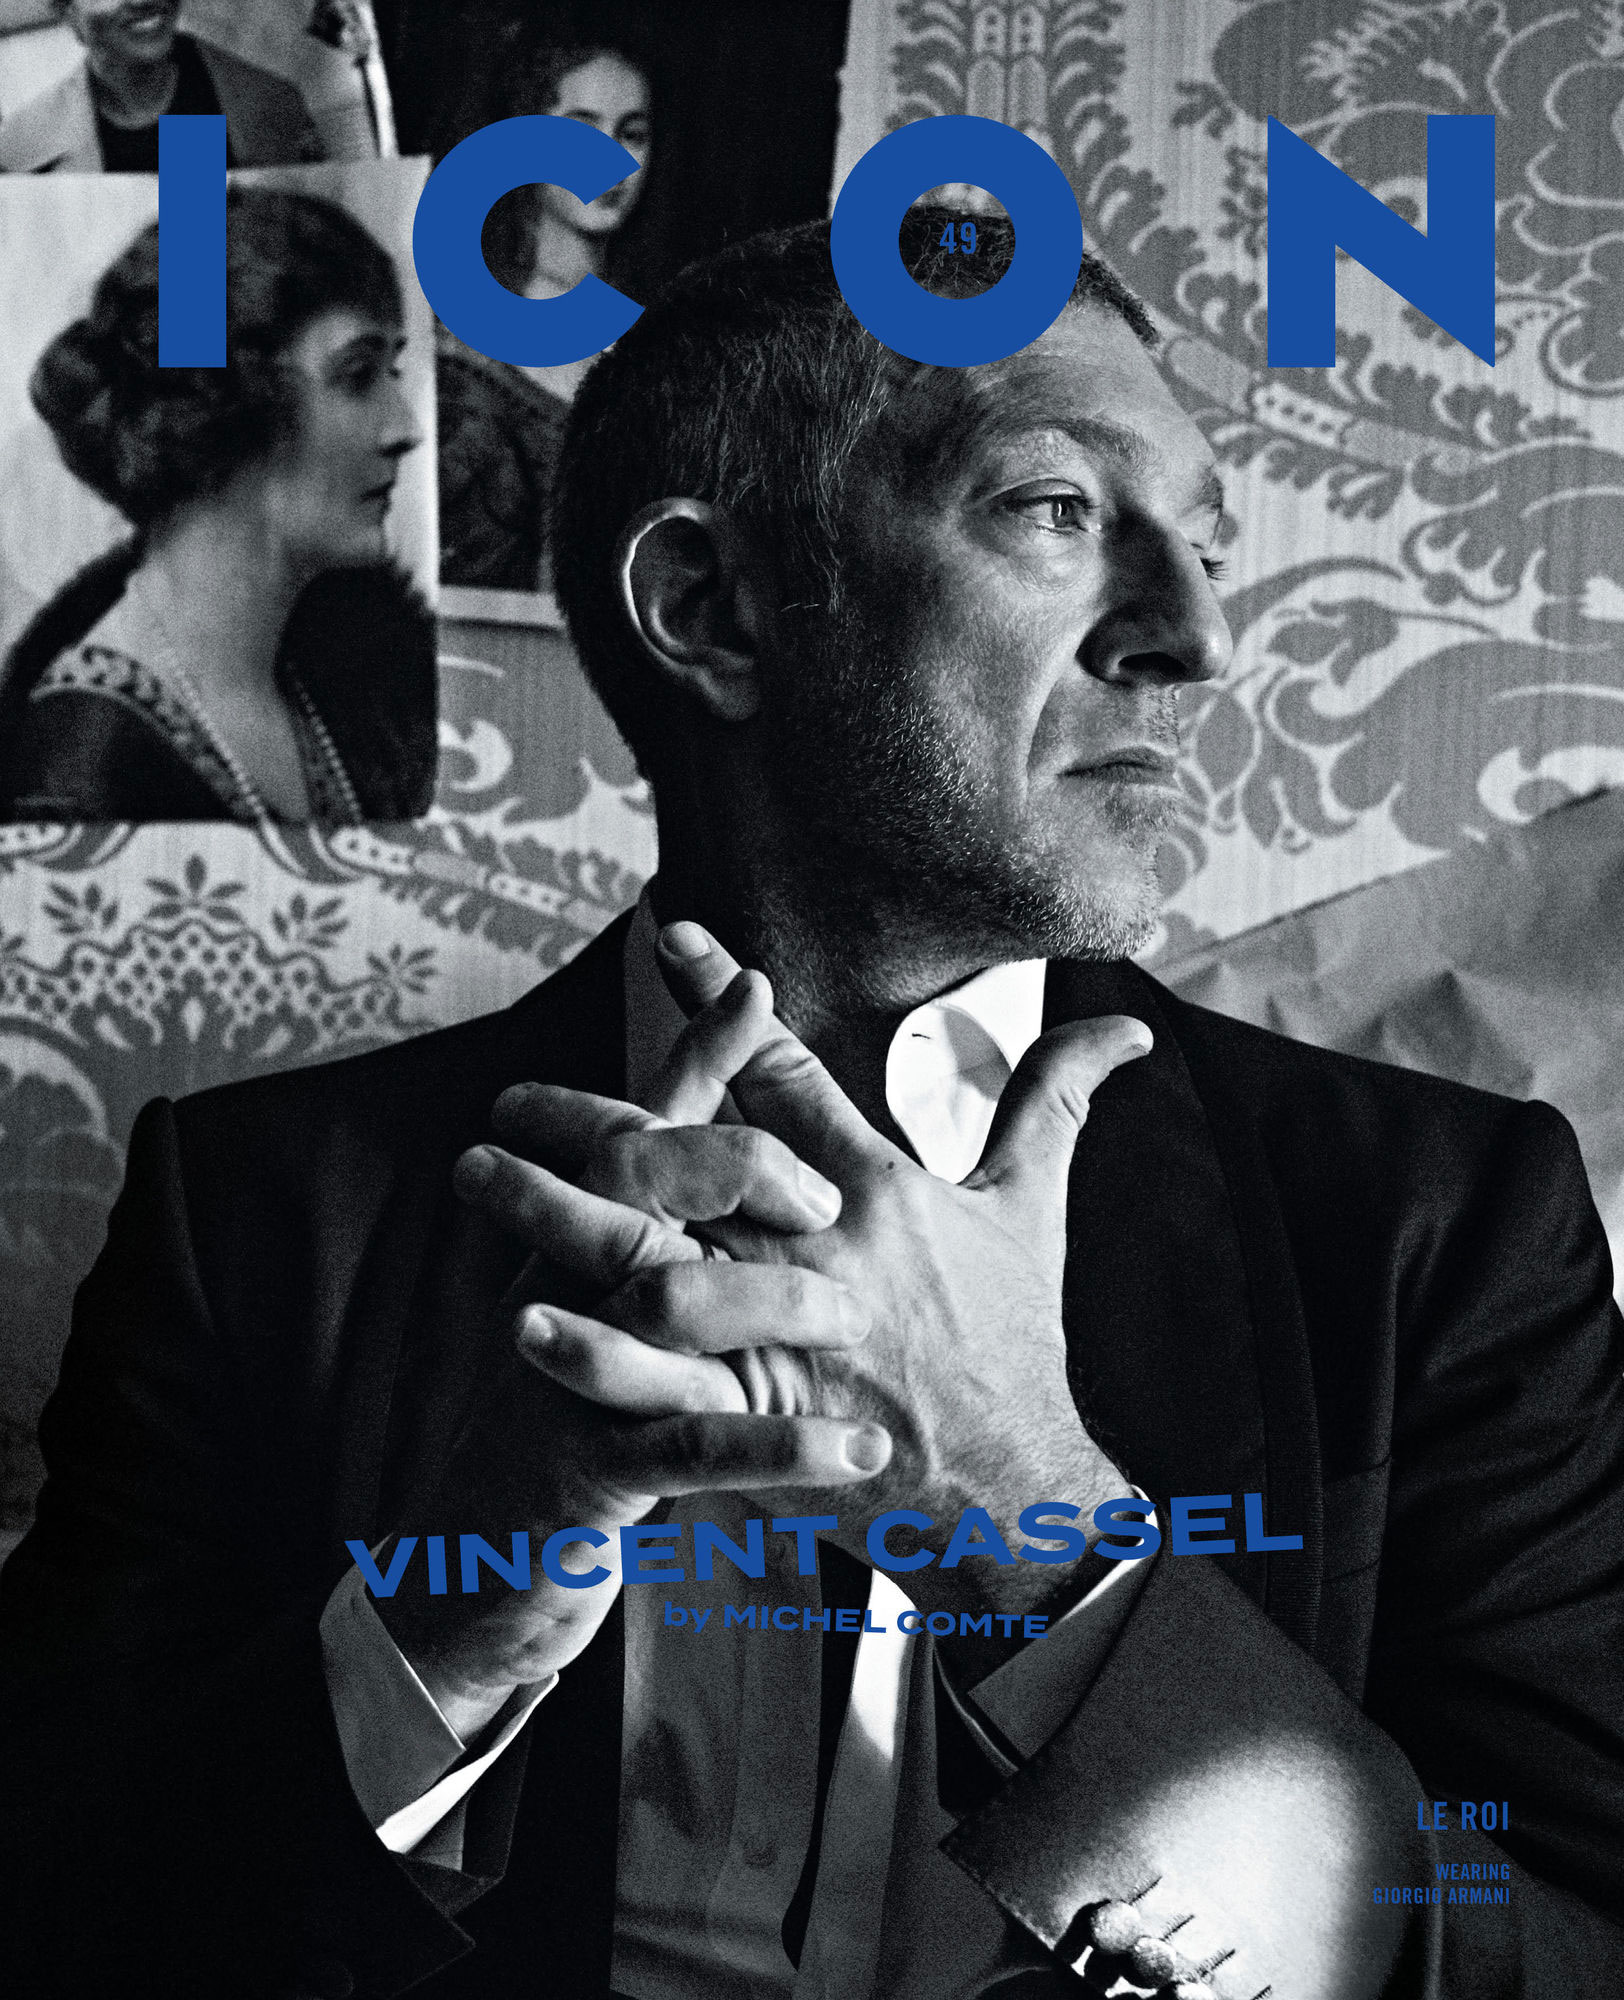 Icon Magazine x Vincent Cassel 2019 | Numerique Retouch Photo Retouching Studio